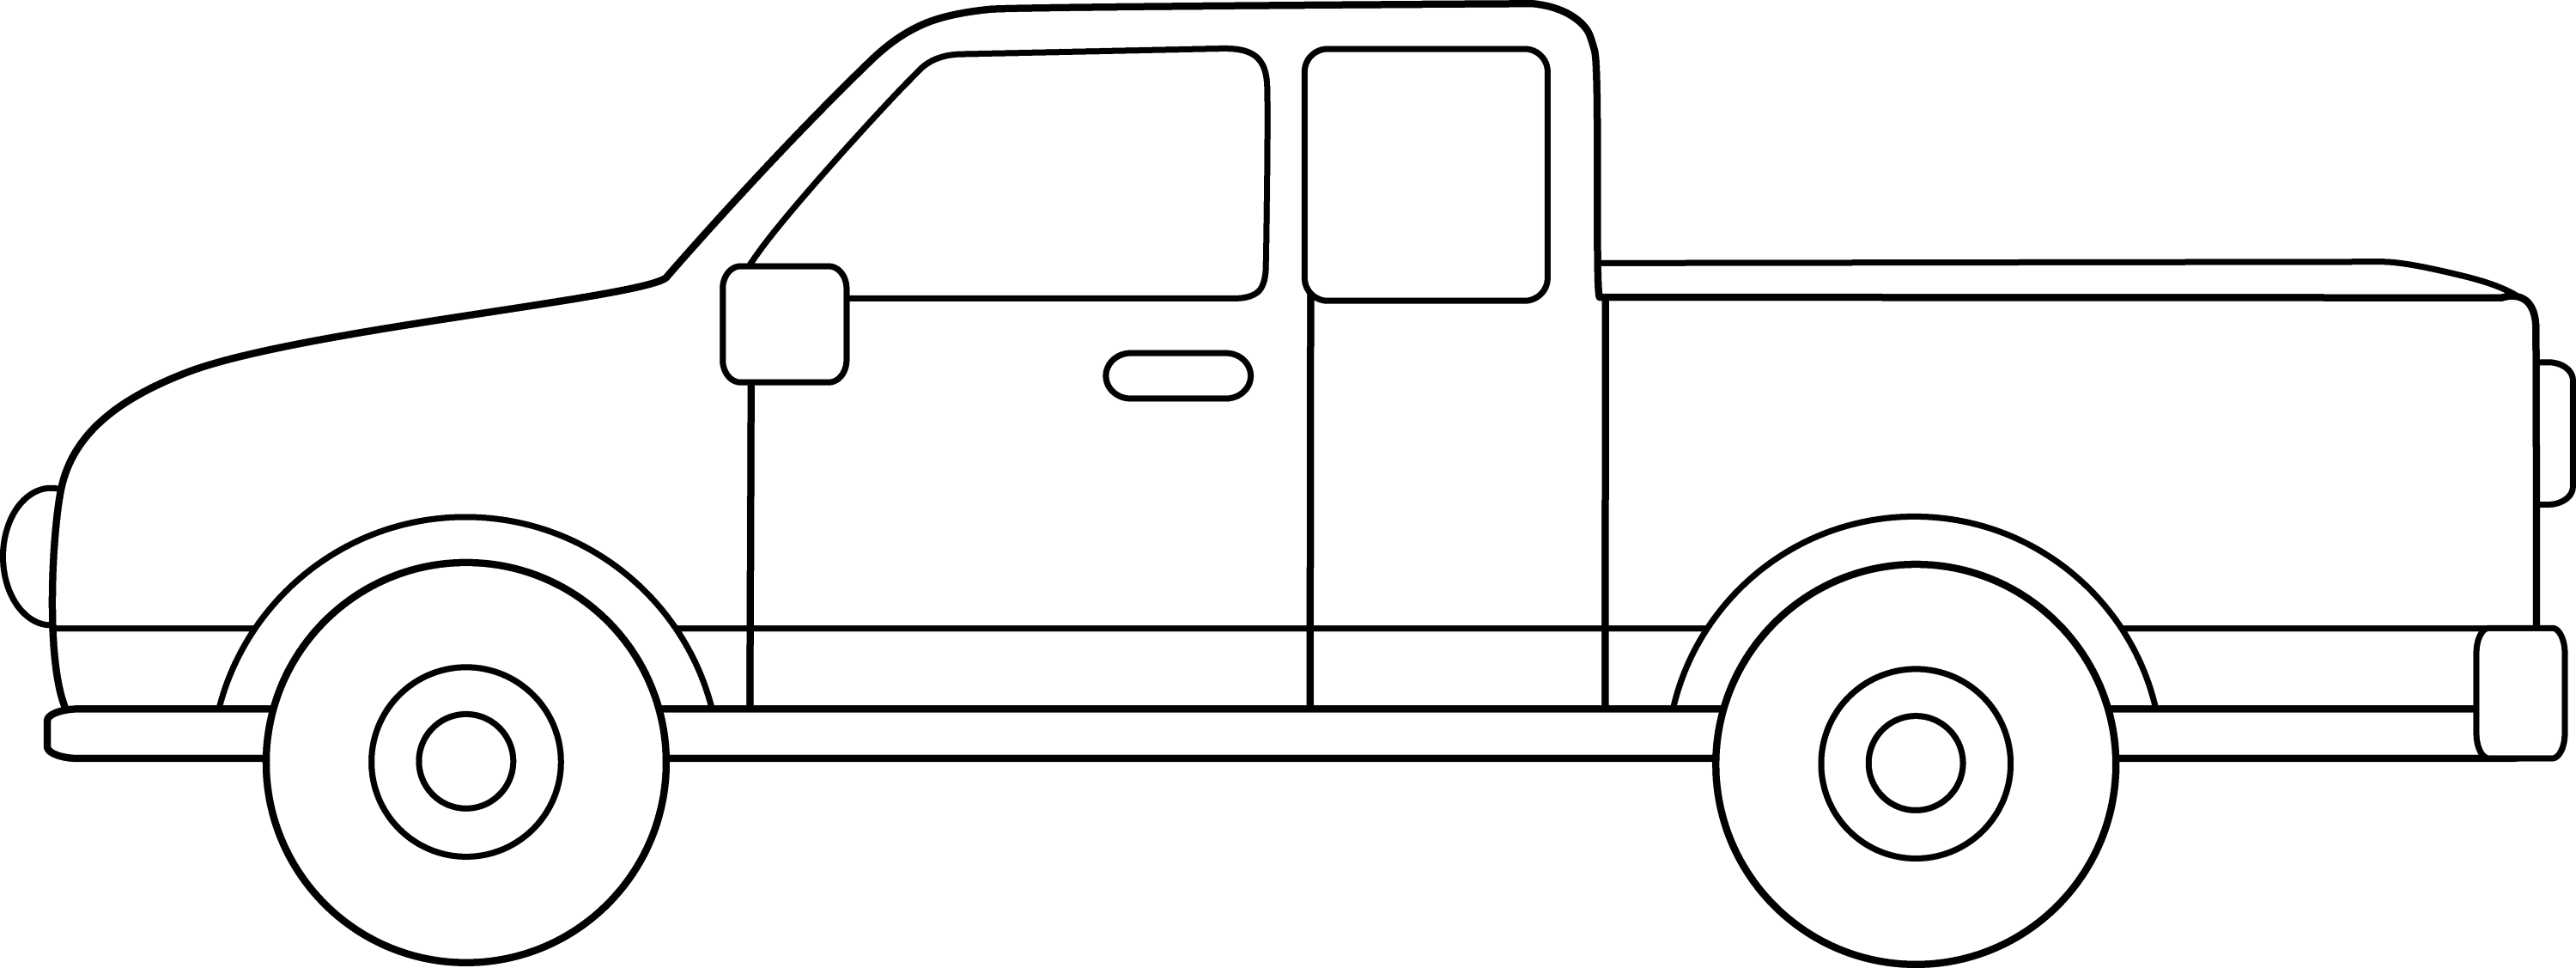 Pickup Truck Coloring Page - Free Clip Art